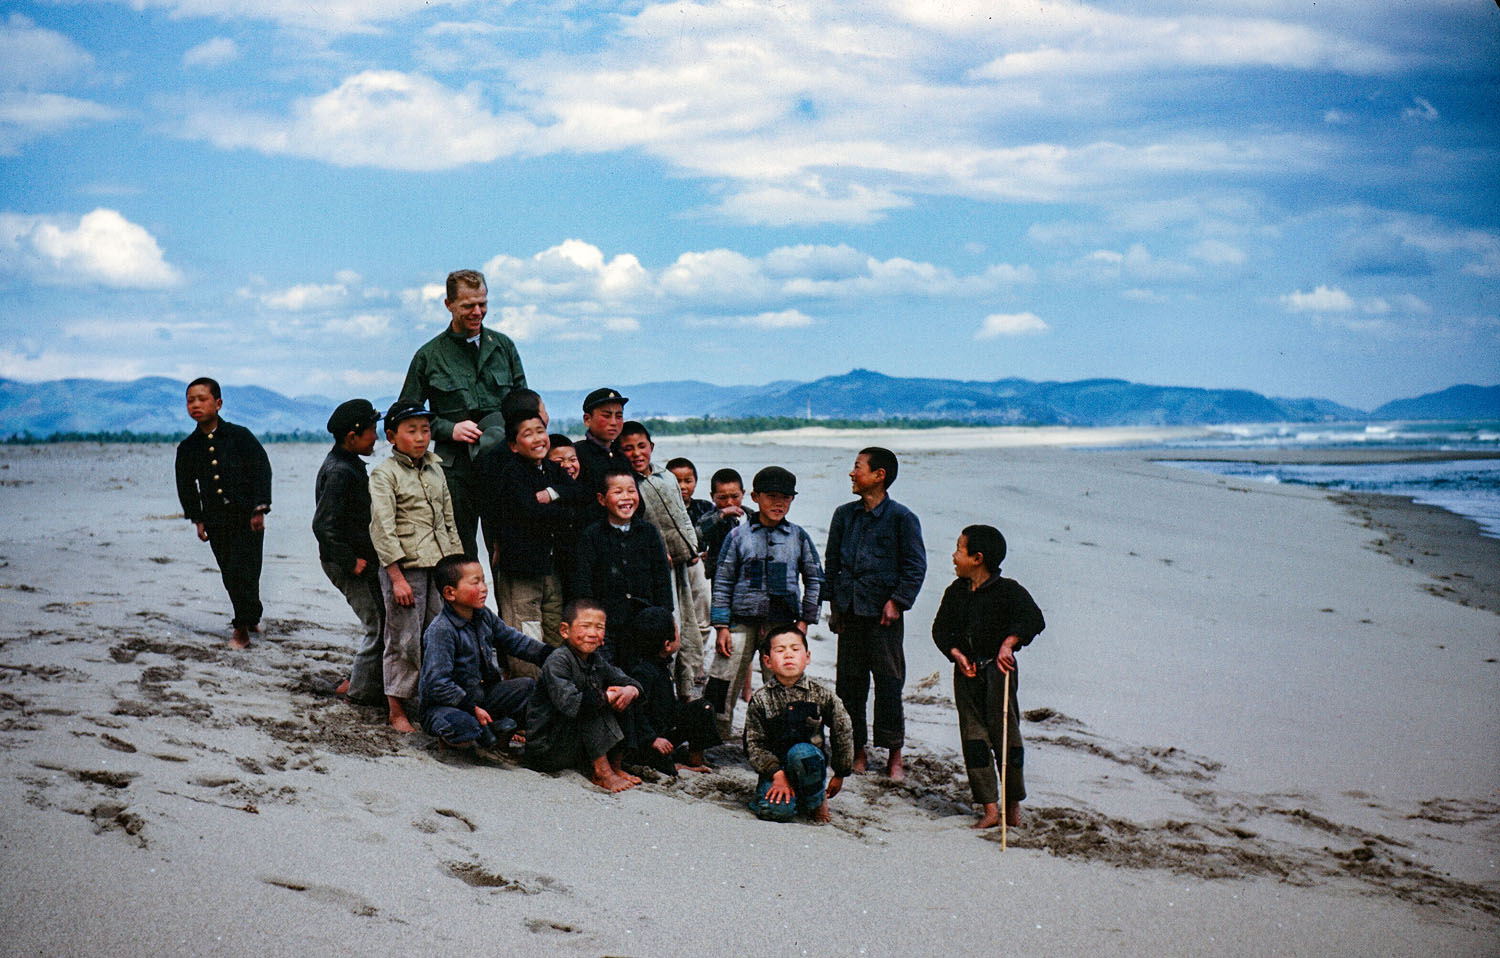 449-GI with Children on Beach